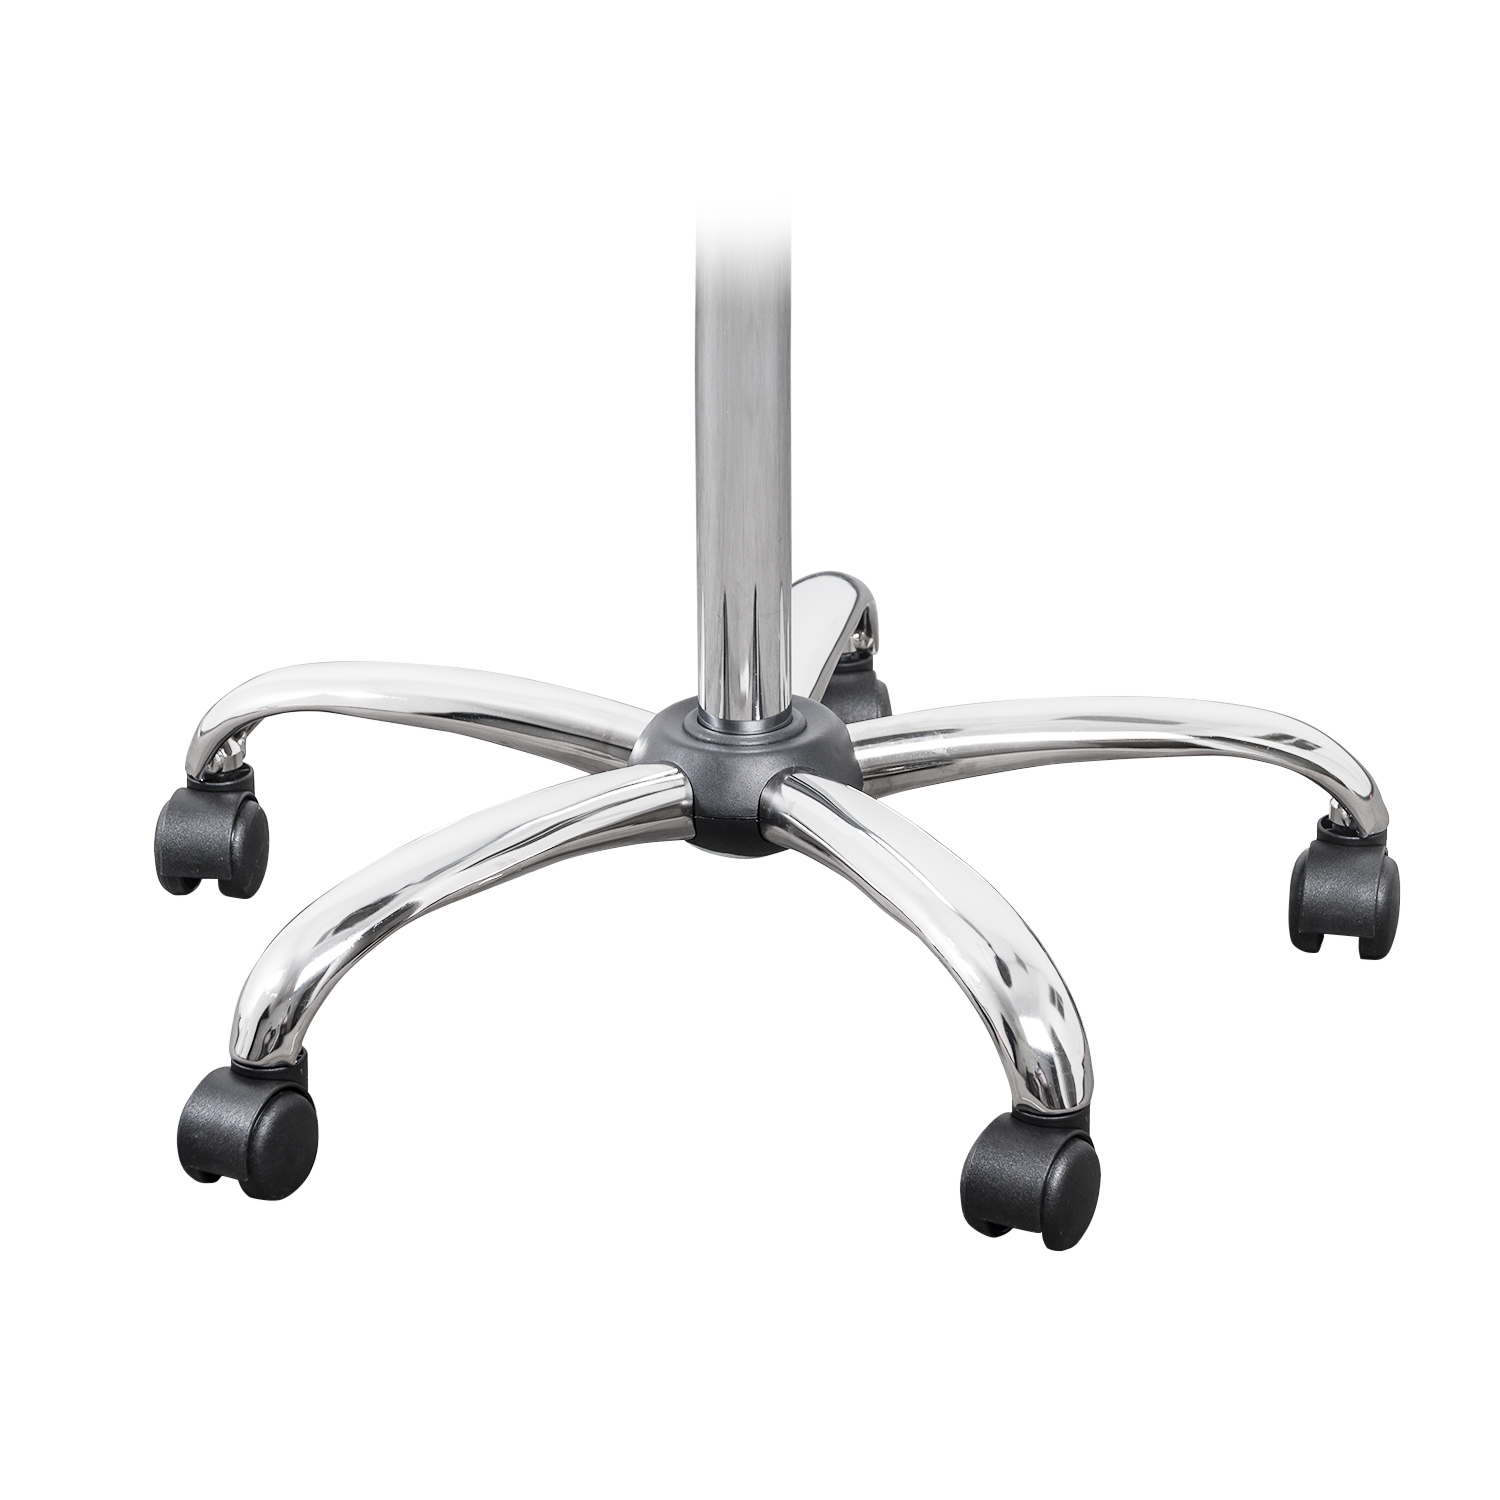 Black Italian Rondo Dryer on Chrome Stand alternative product image 4